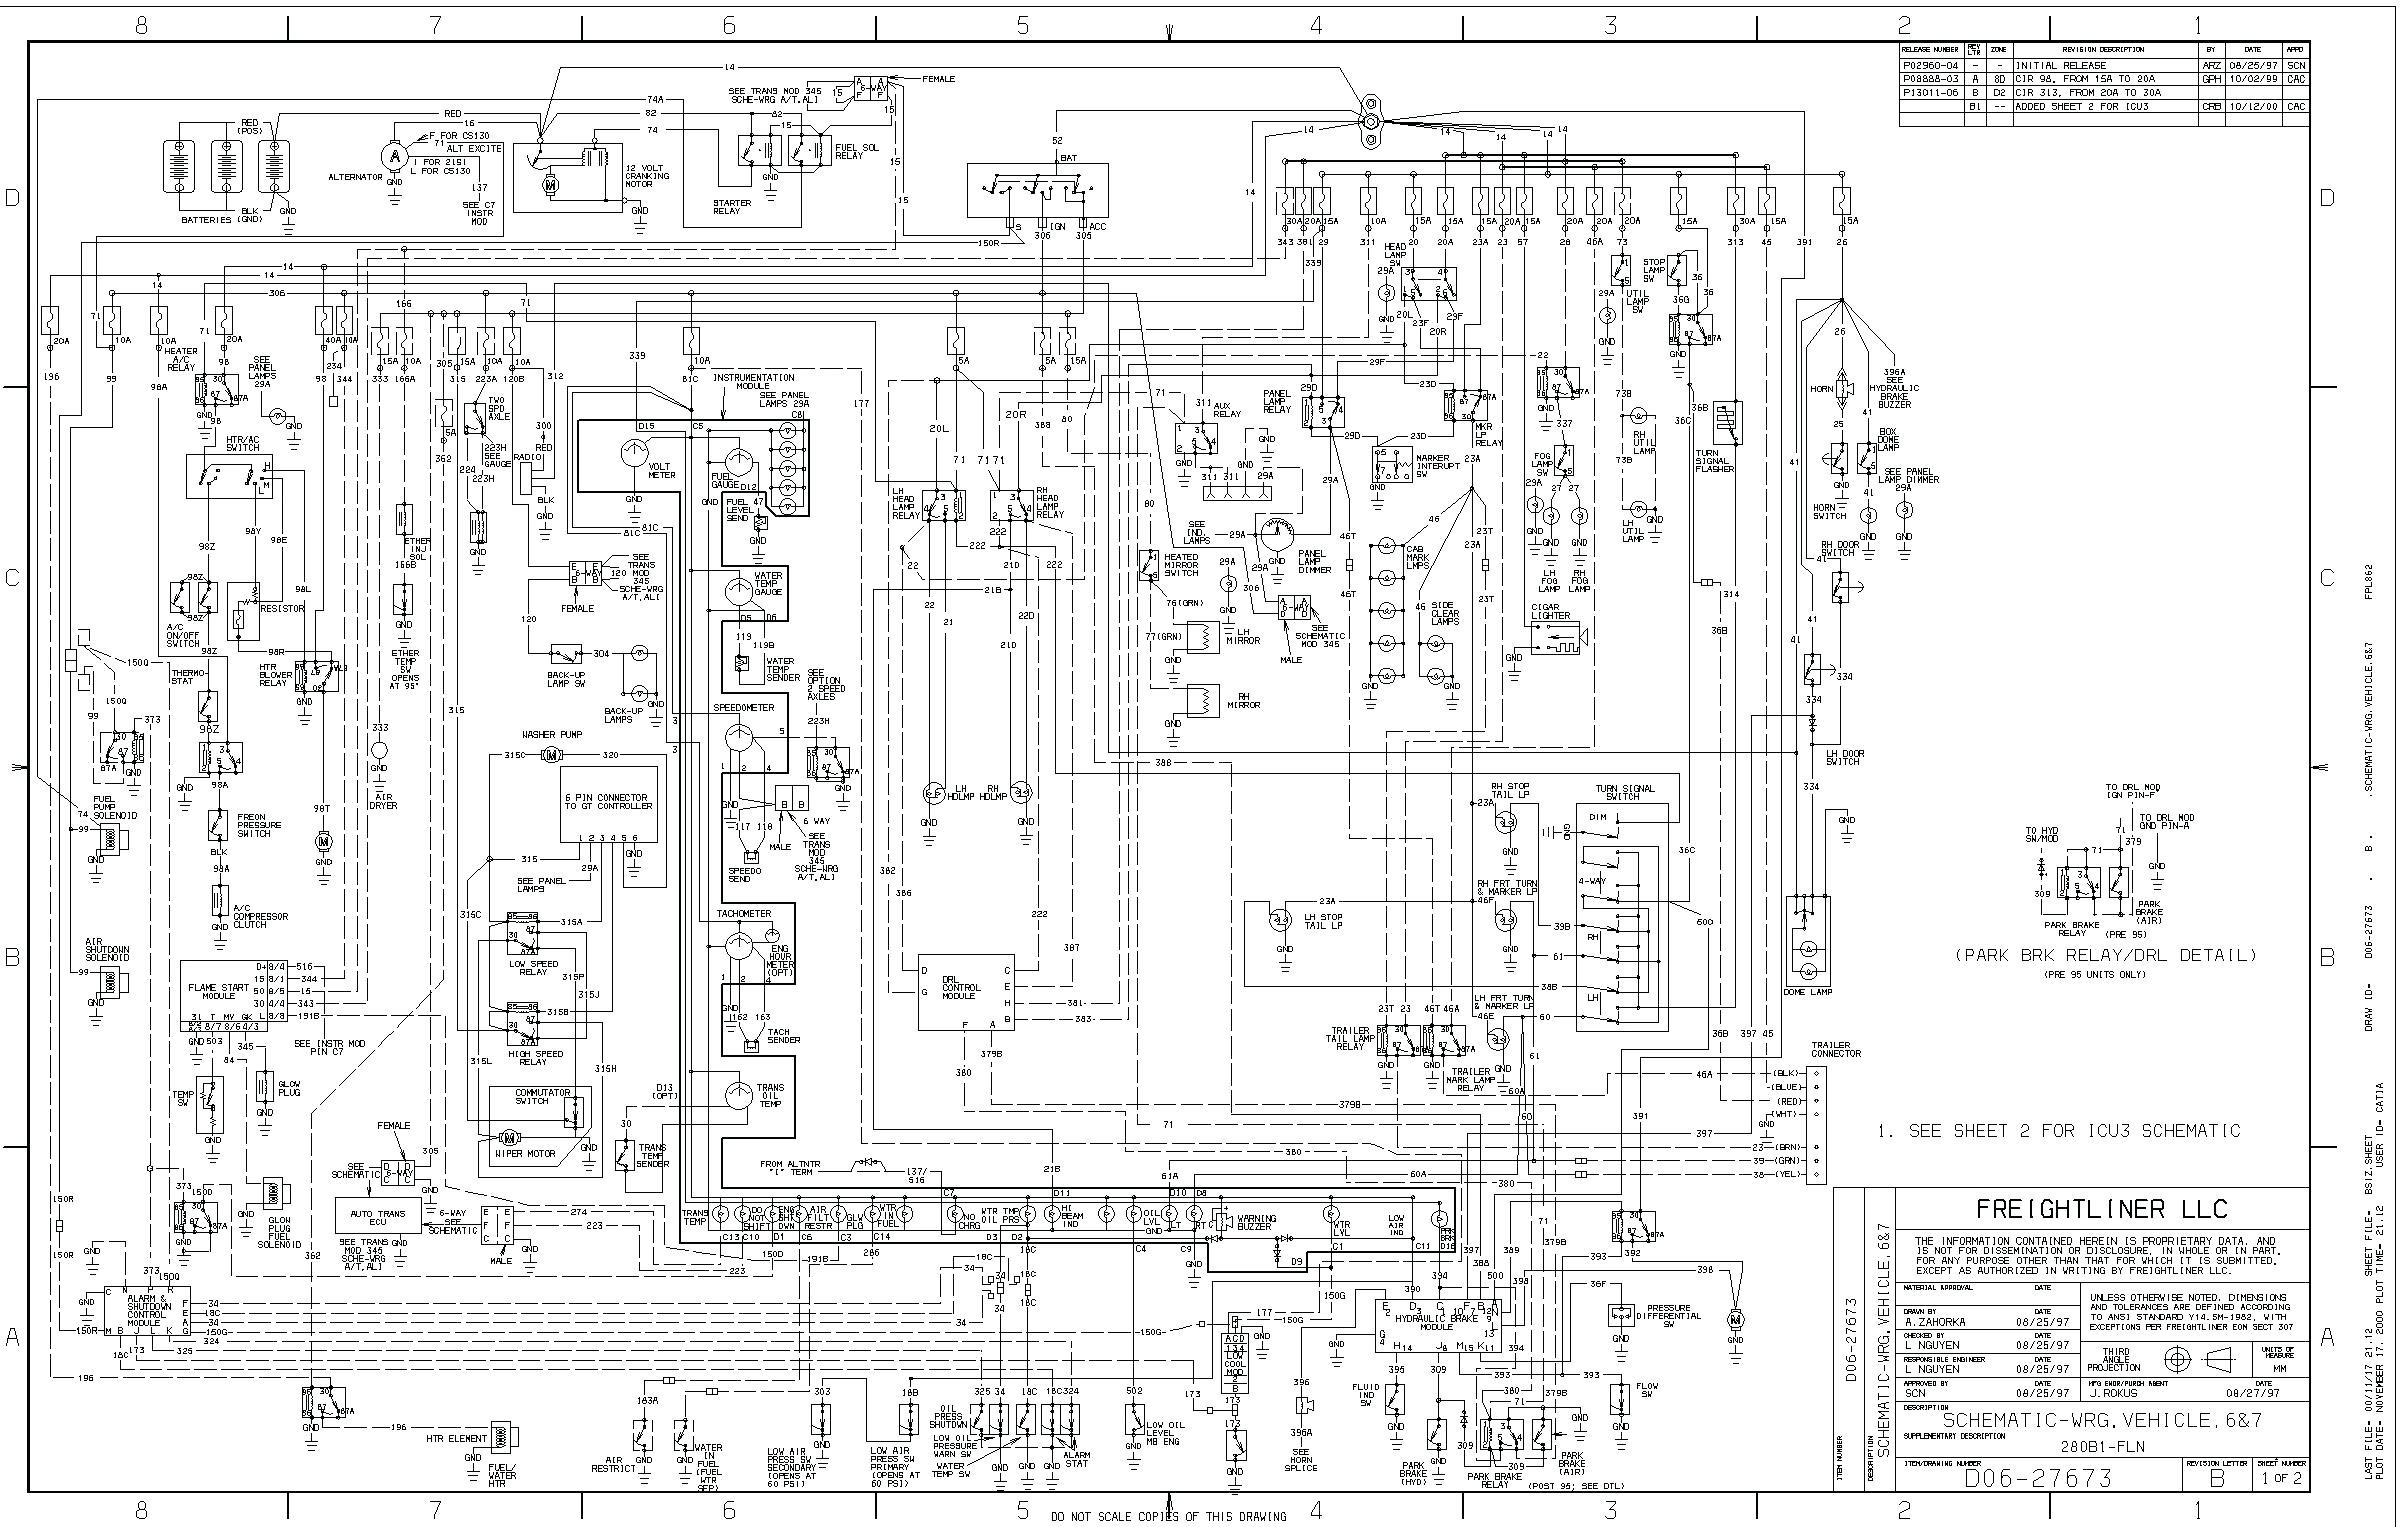 Toyota Camry 2003 Engine Diagram 1996 toyota Camry Engine Wiring Diagram Great Chassis In Alternator Of Toyota Camry 2003 Engine Diagram